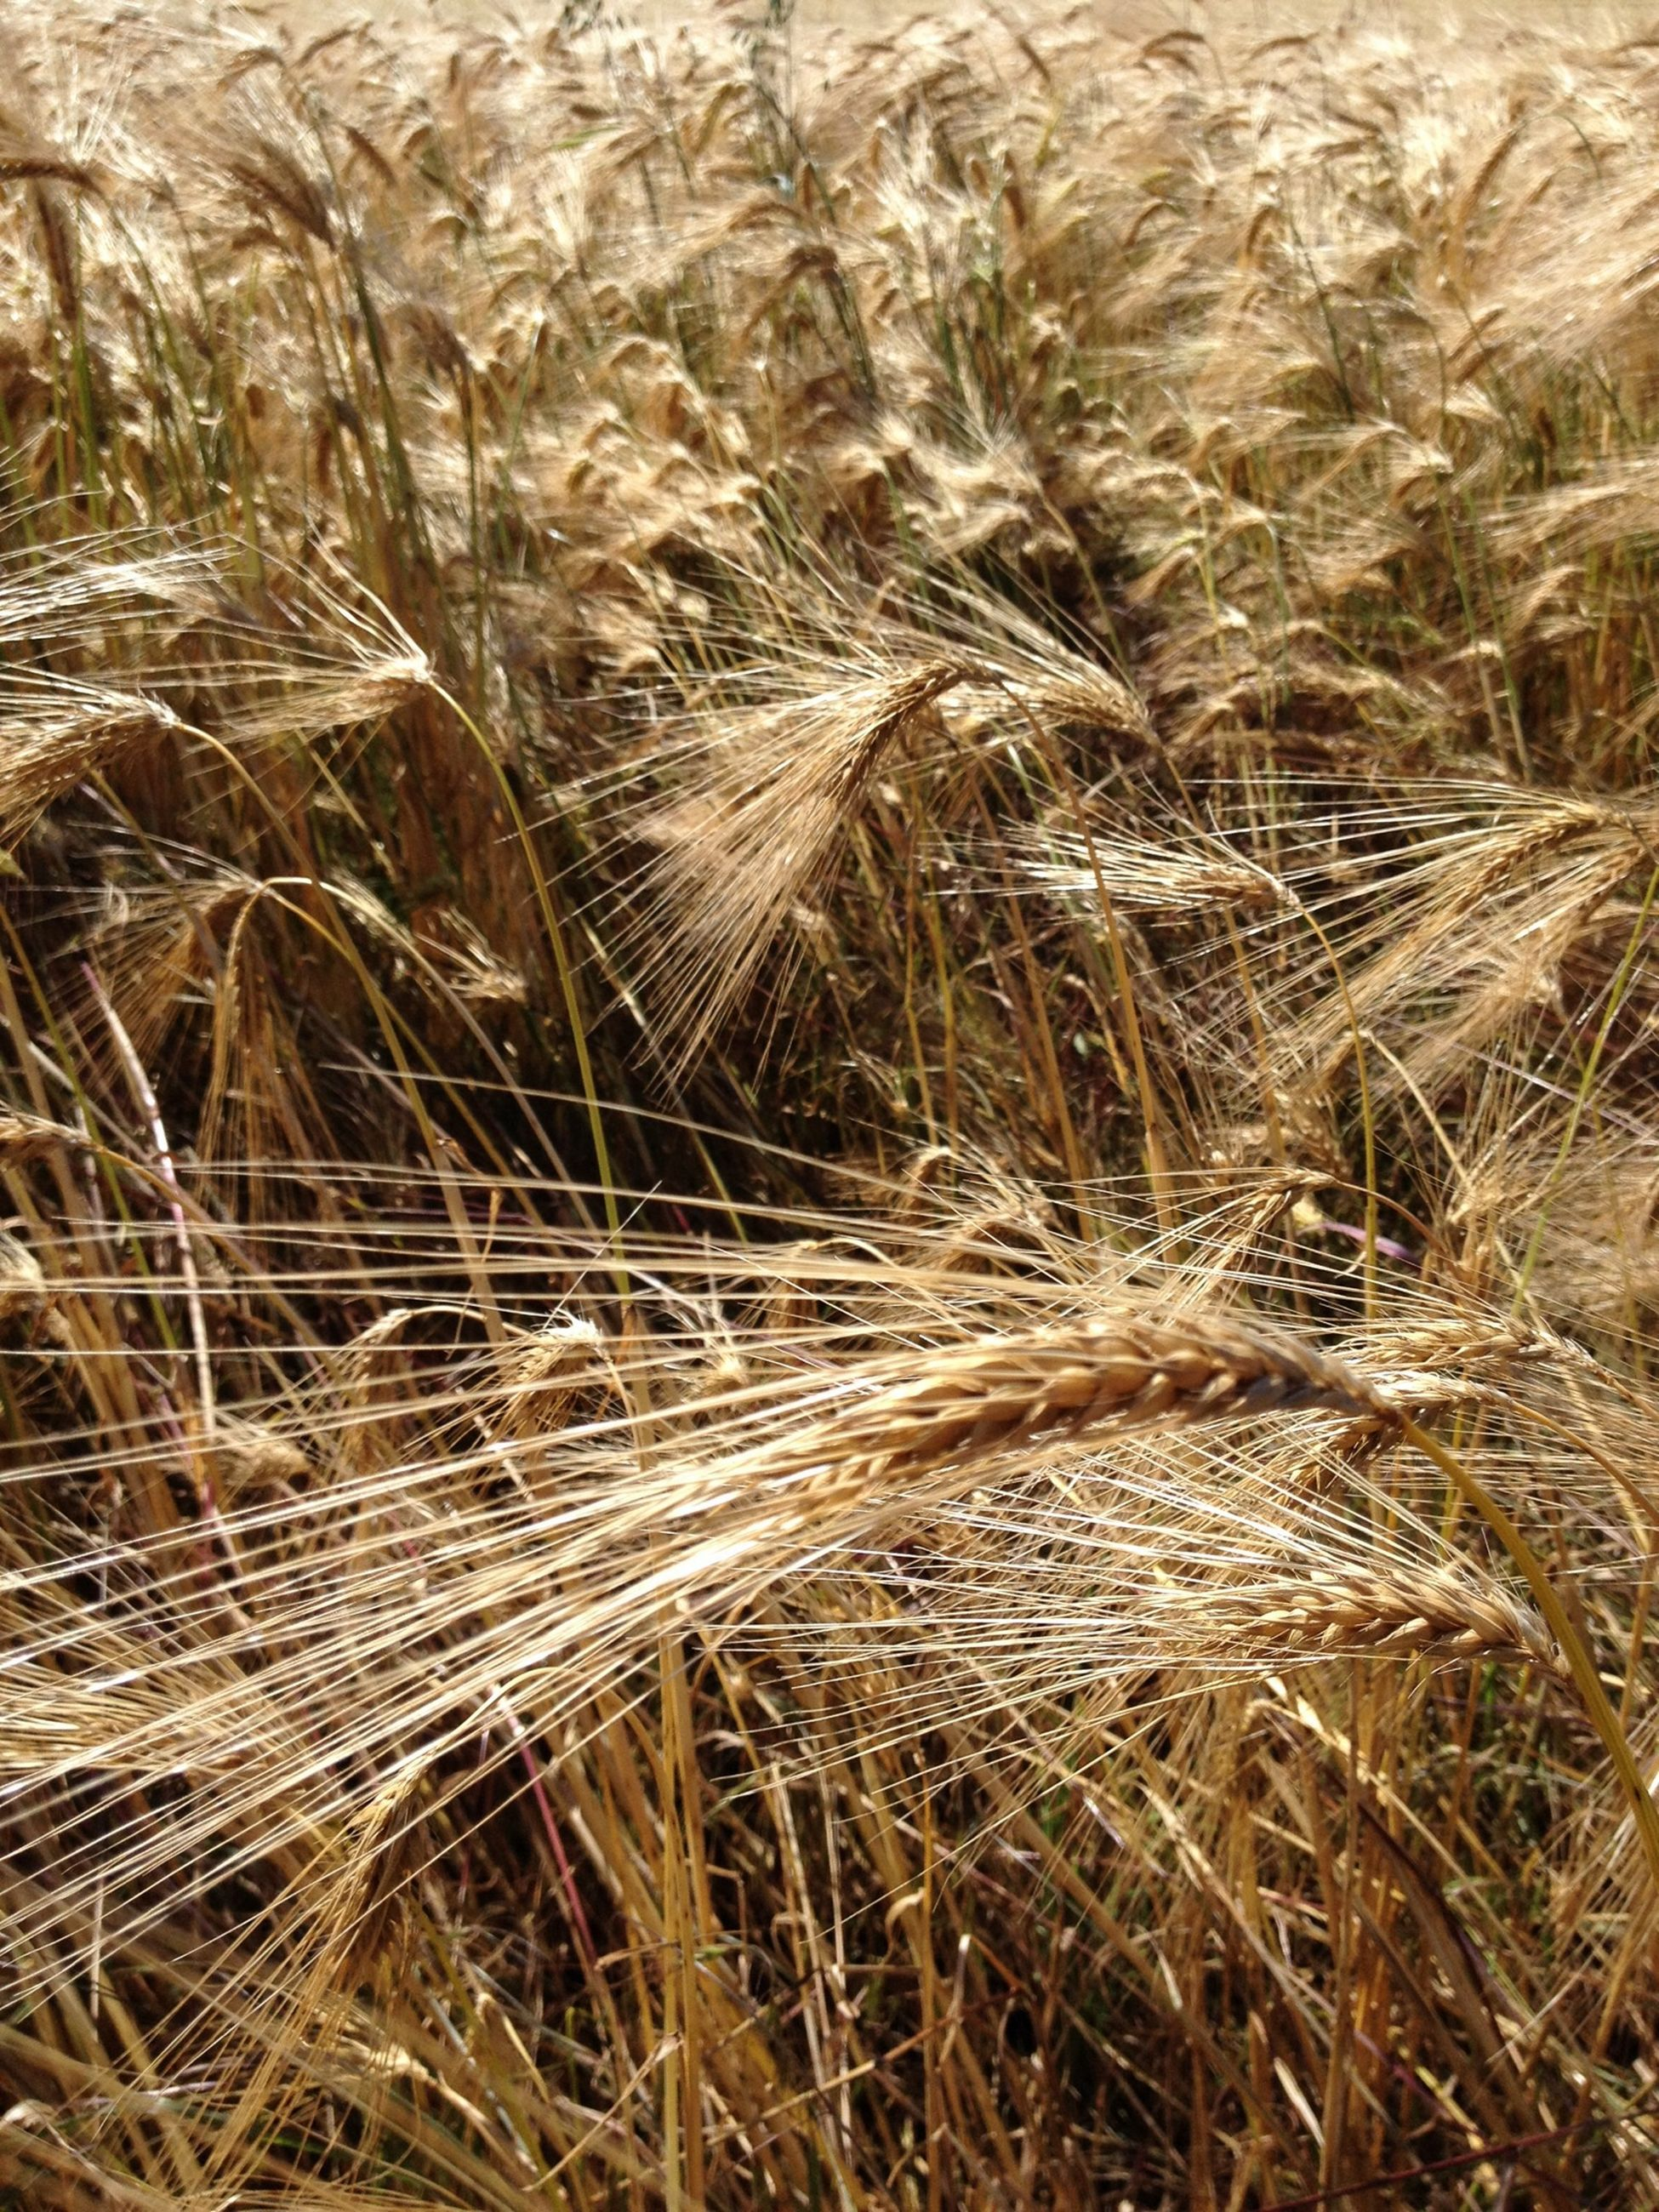 field, dry, nature, full frame, backgrounds, tranquility, growth, grass, agriculture, high angle view, rural scene, cereal plant, landscape, abundance, farm, crop, day, no people, outdoors, wheat